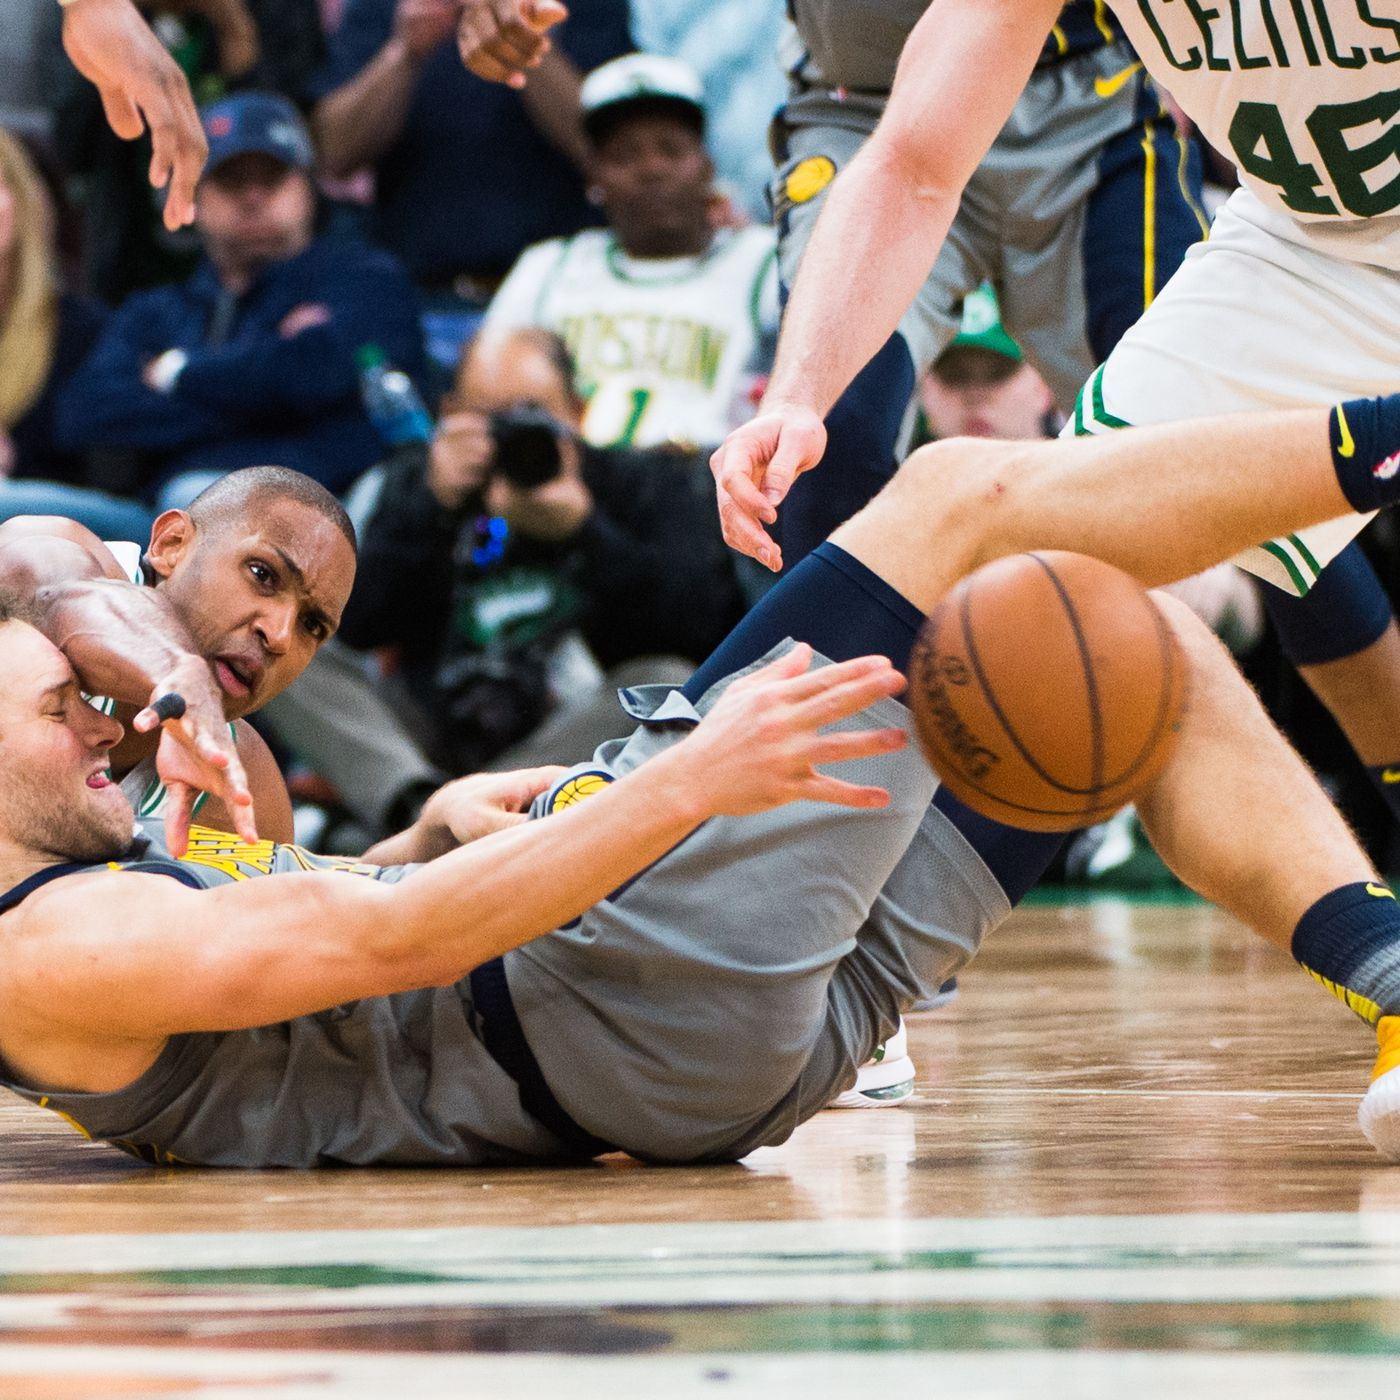 a523993c8aa7 Preview  Indiana Pacers at Boston Celtics - Playoffs Round 1 Game 1 -  CelticsBlog